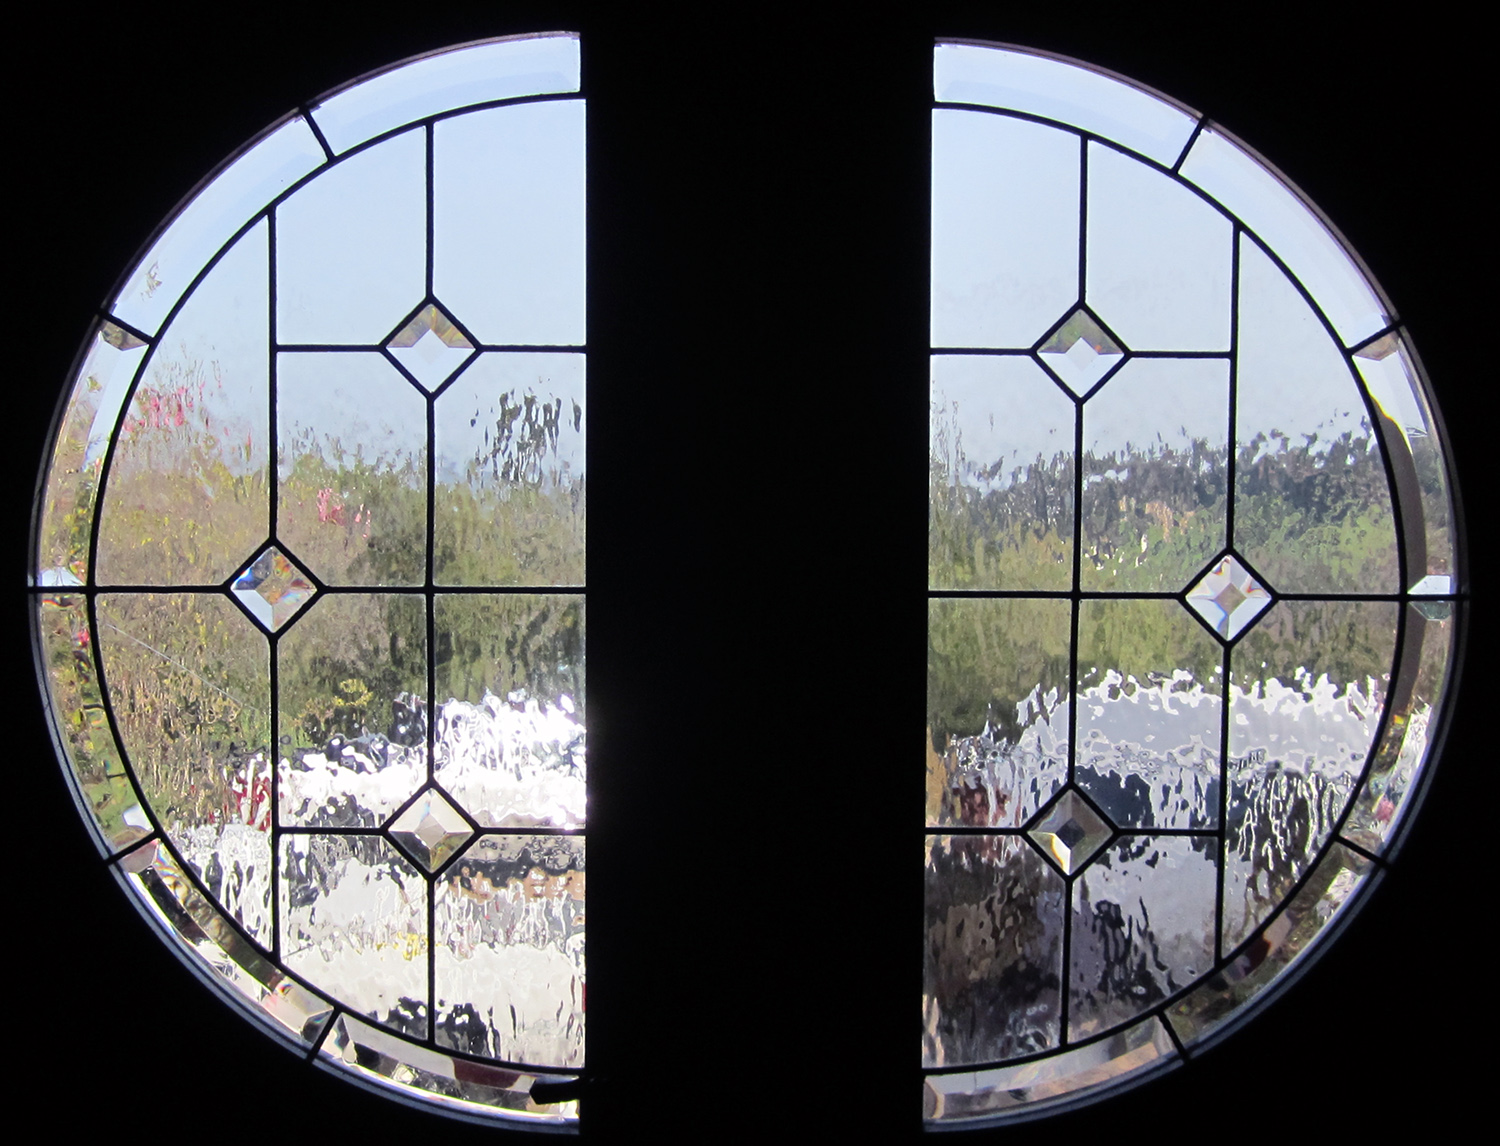 beveled square pencil bevel water glass clear texture leaded glass stained glass window palo alto atherton california san francisco.jpg